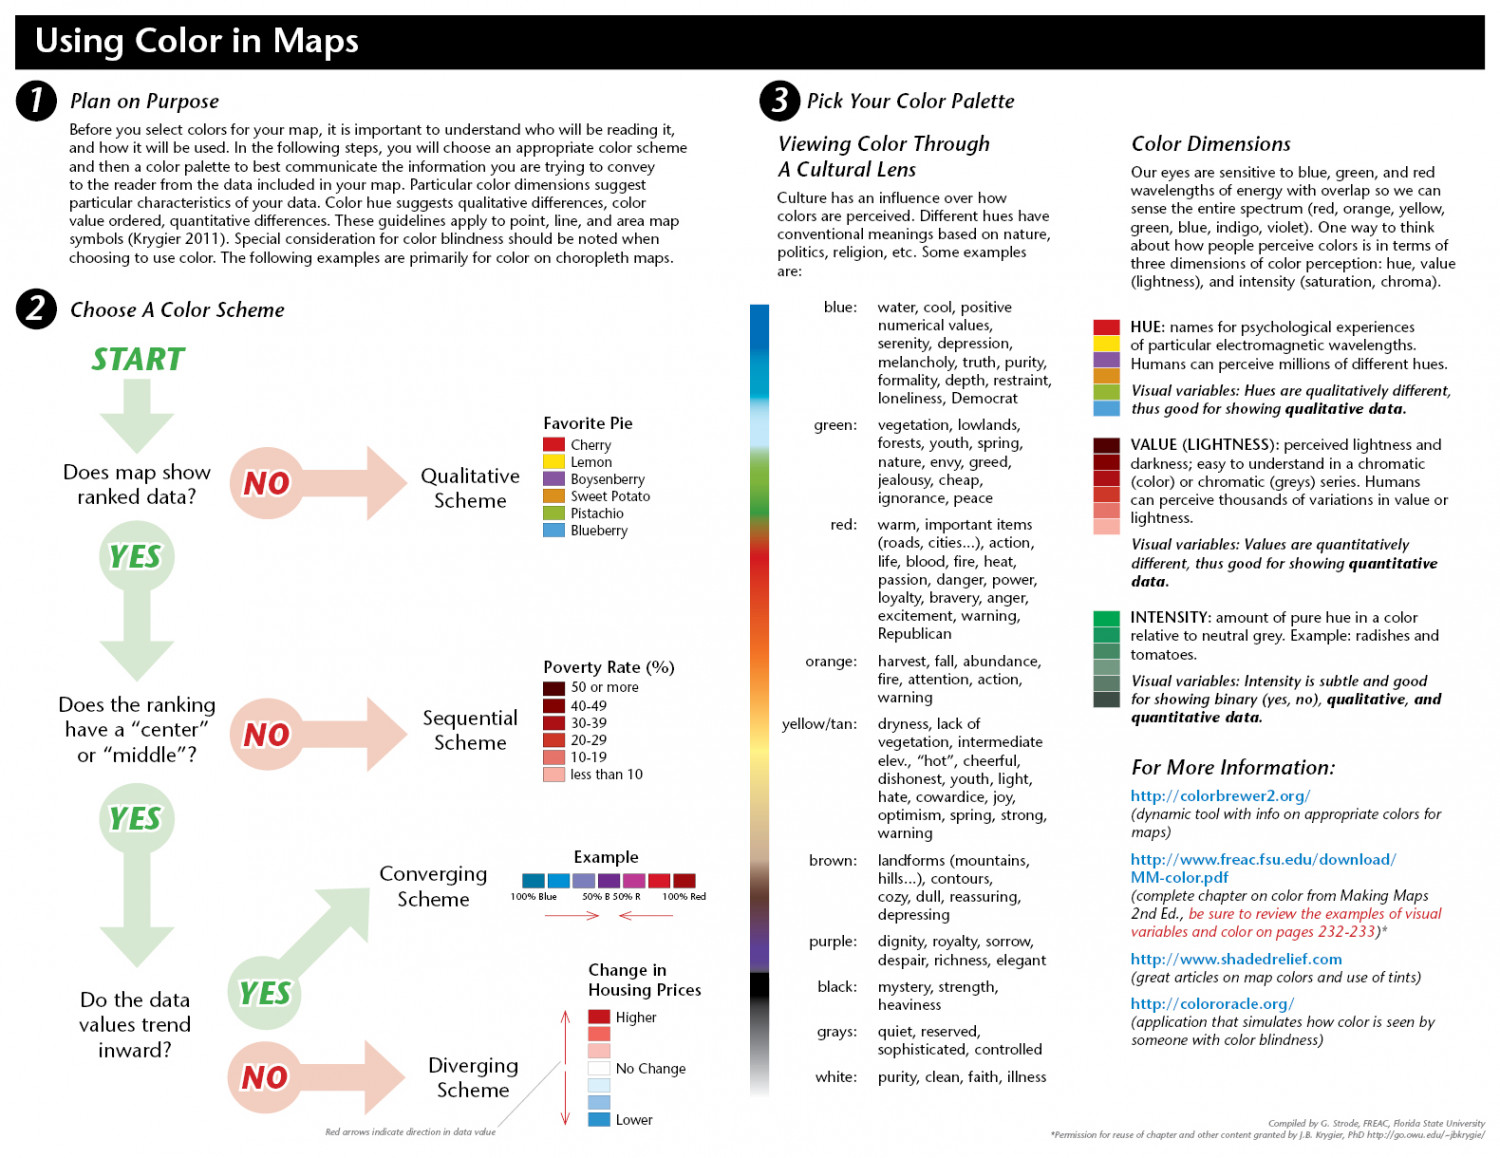 Using Color in Maps Infographic